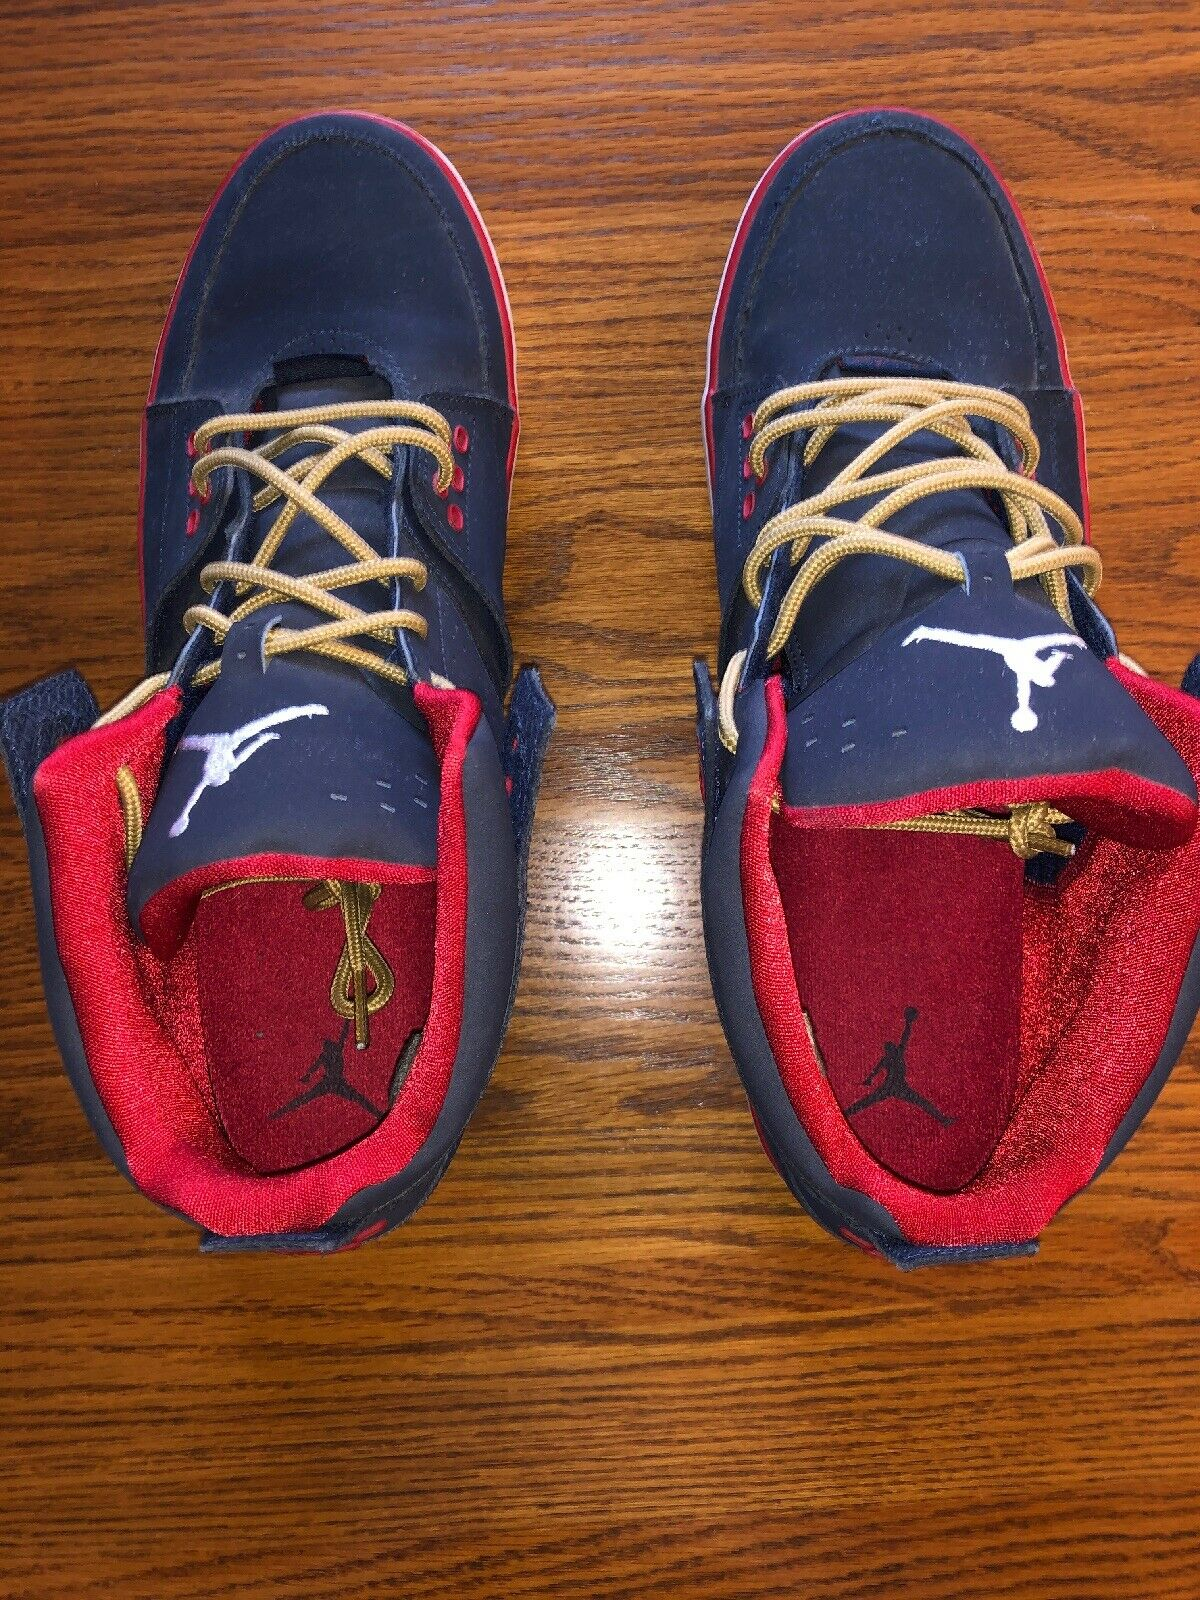 Air Jordan 2012 Navy Red White gold Lace Size 13 MINT